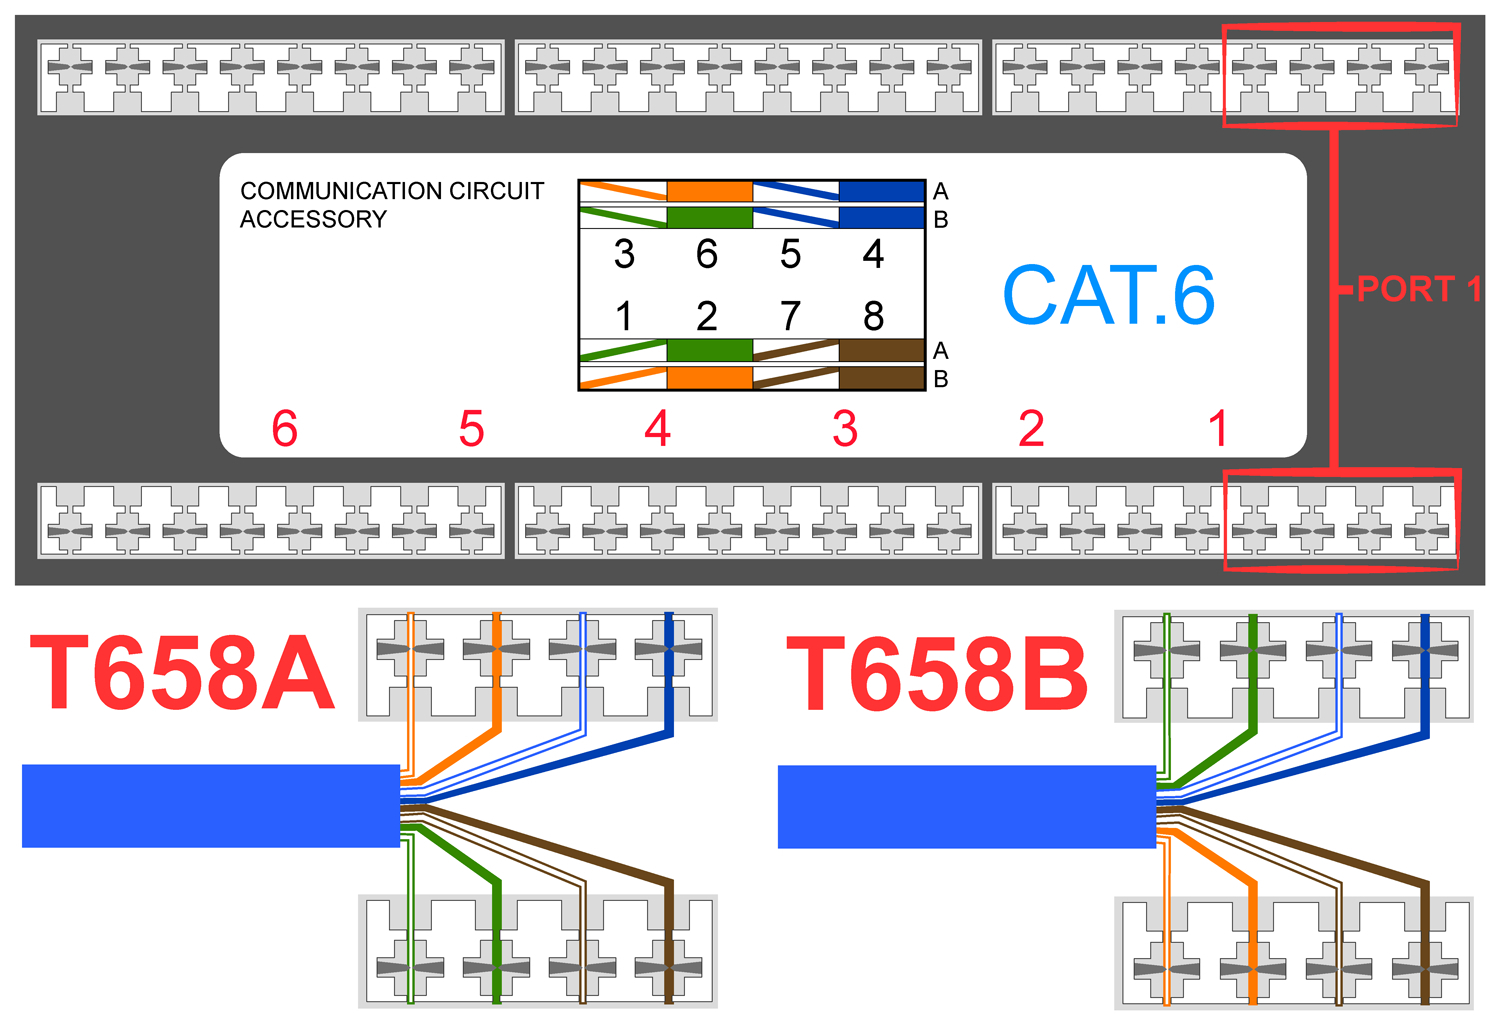 cat5 telephone jack wiring diagram cat5e jack wiring diagram wiring diagram rh visithoustontexas org cat5 telephone wiring diagram cat 5 jack wiring diagram 4e color diagram for phone line car wiring diagrams explained \u2022